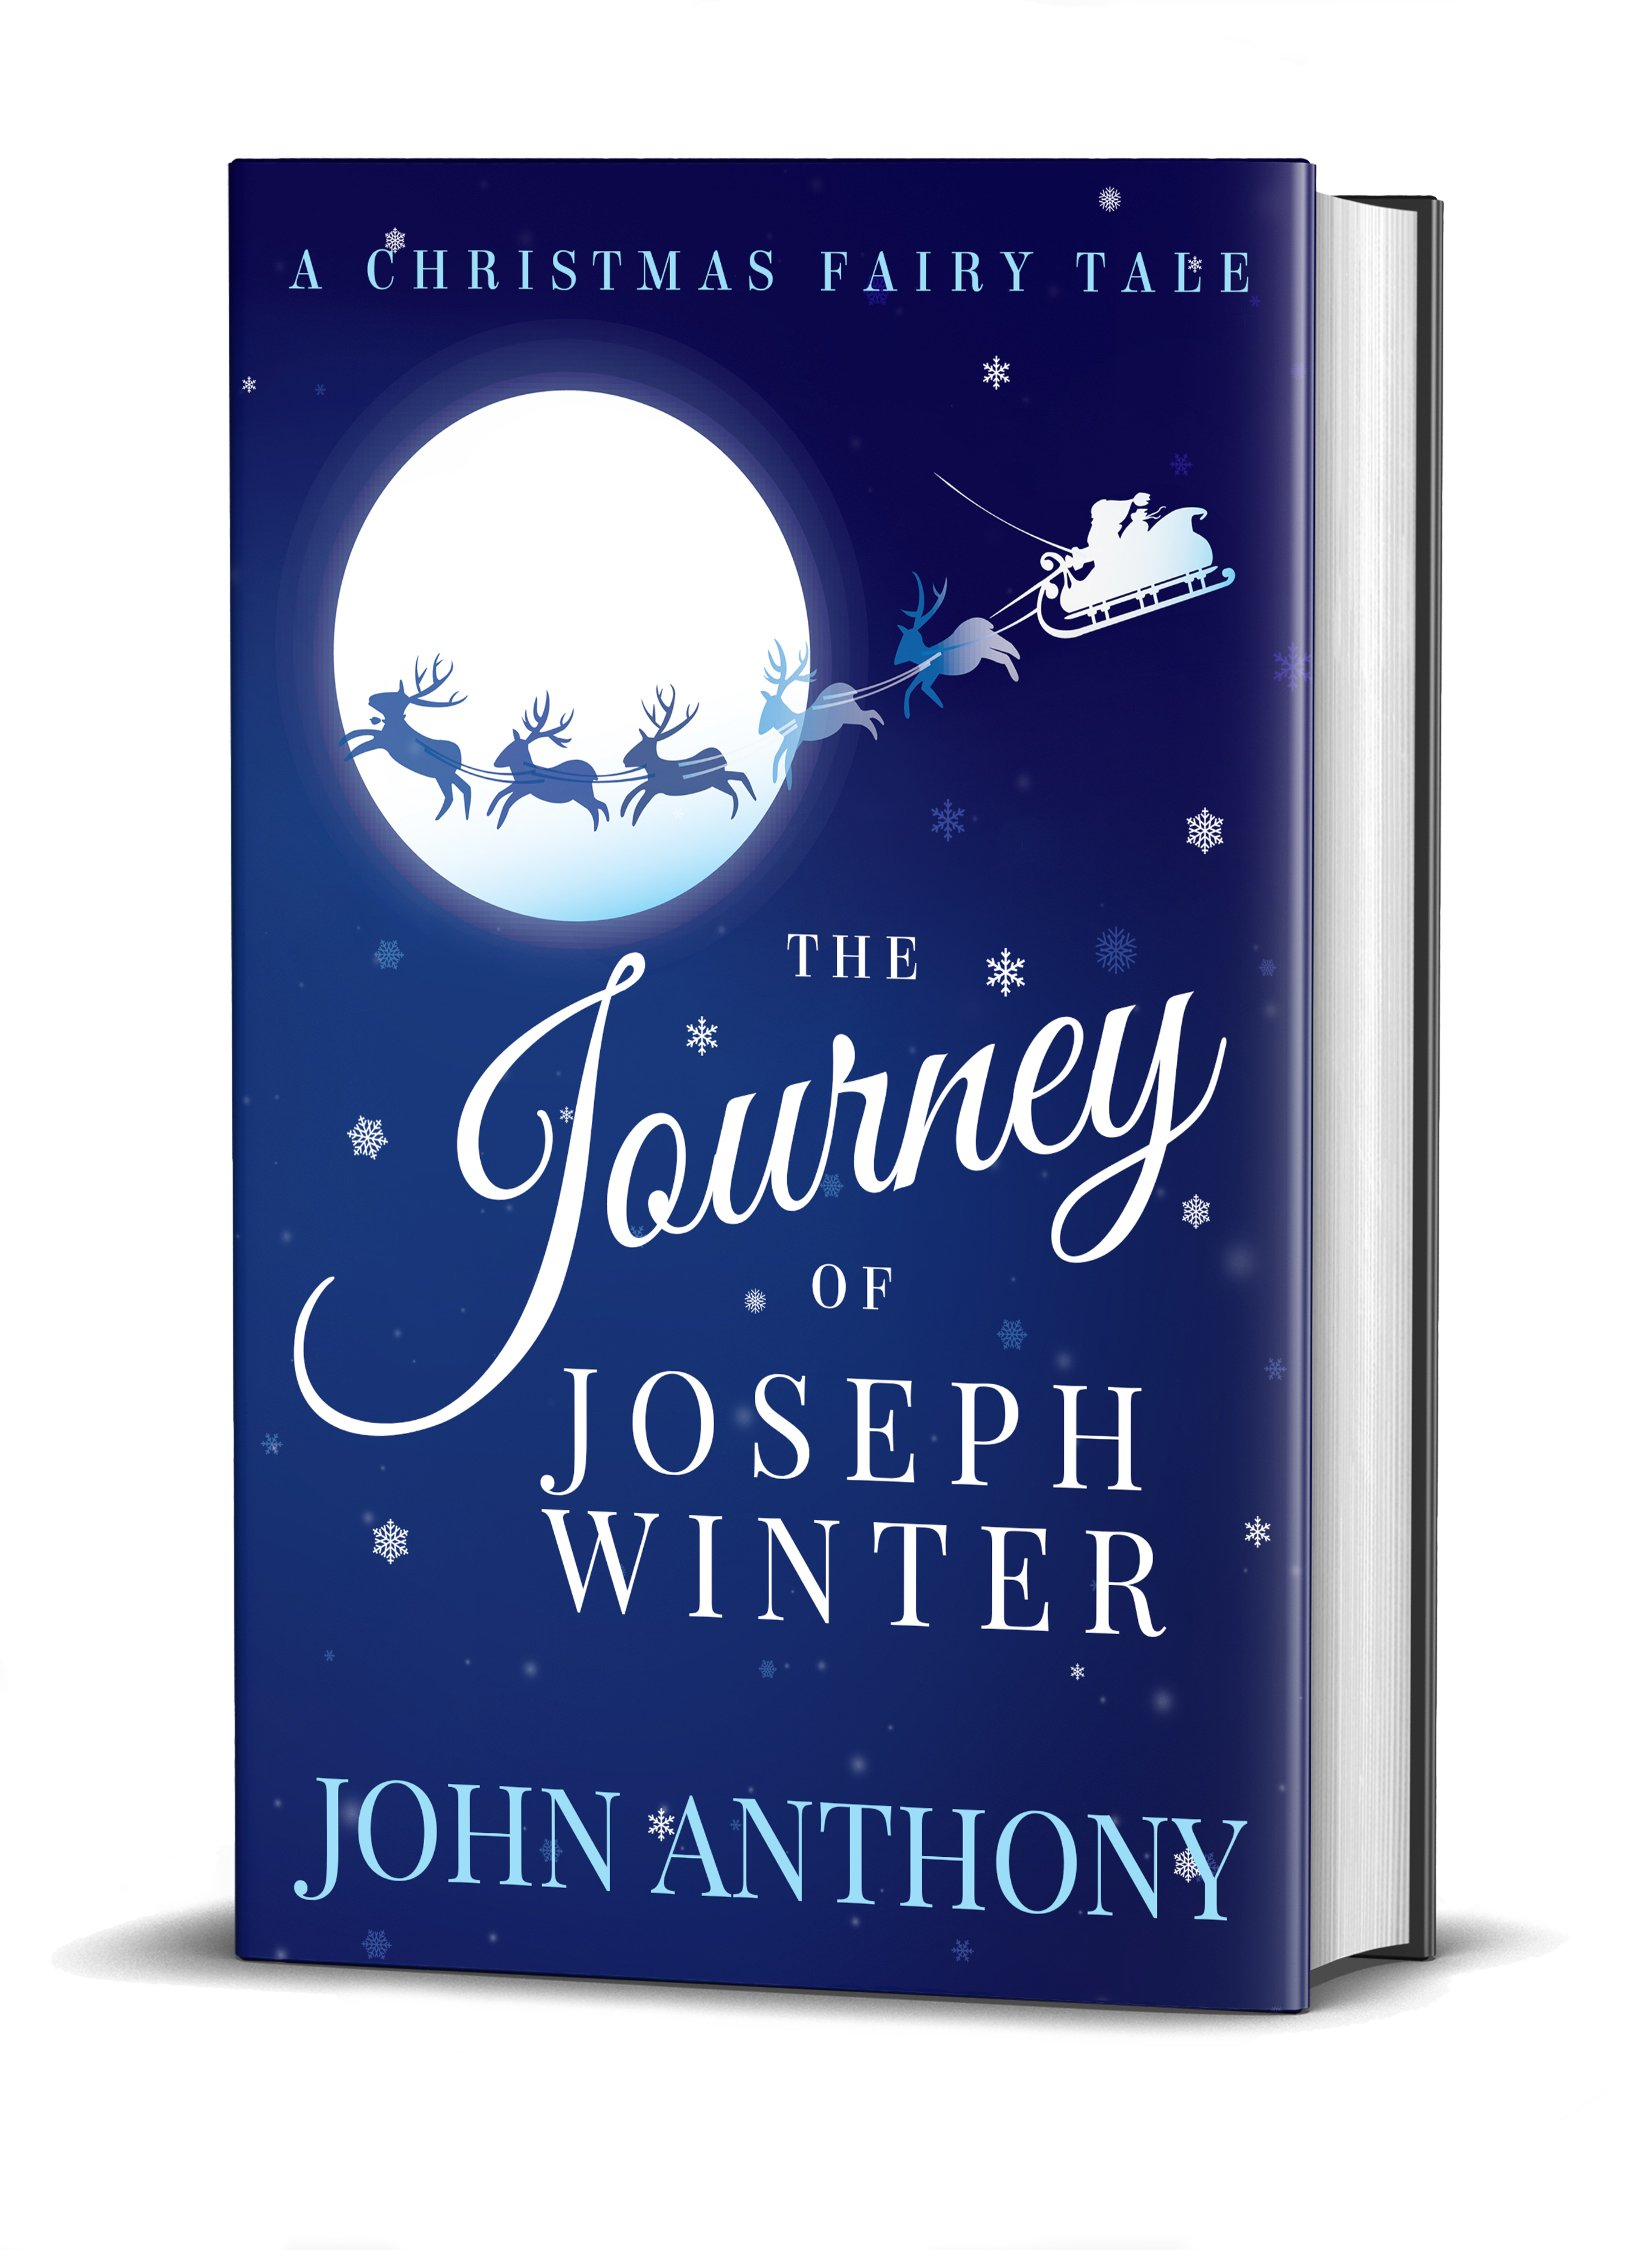 The Journey of Joseph Winter: A Christmas Fairy Tale by author John Anthony